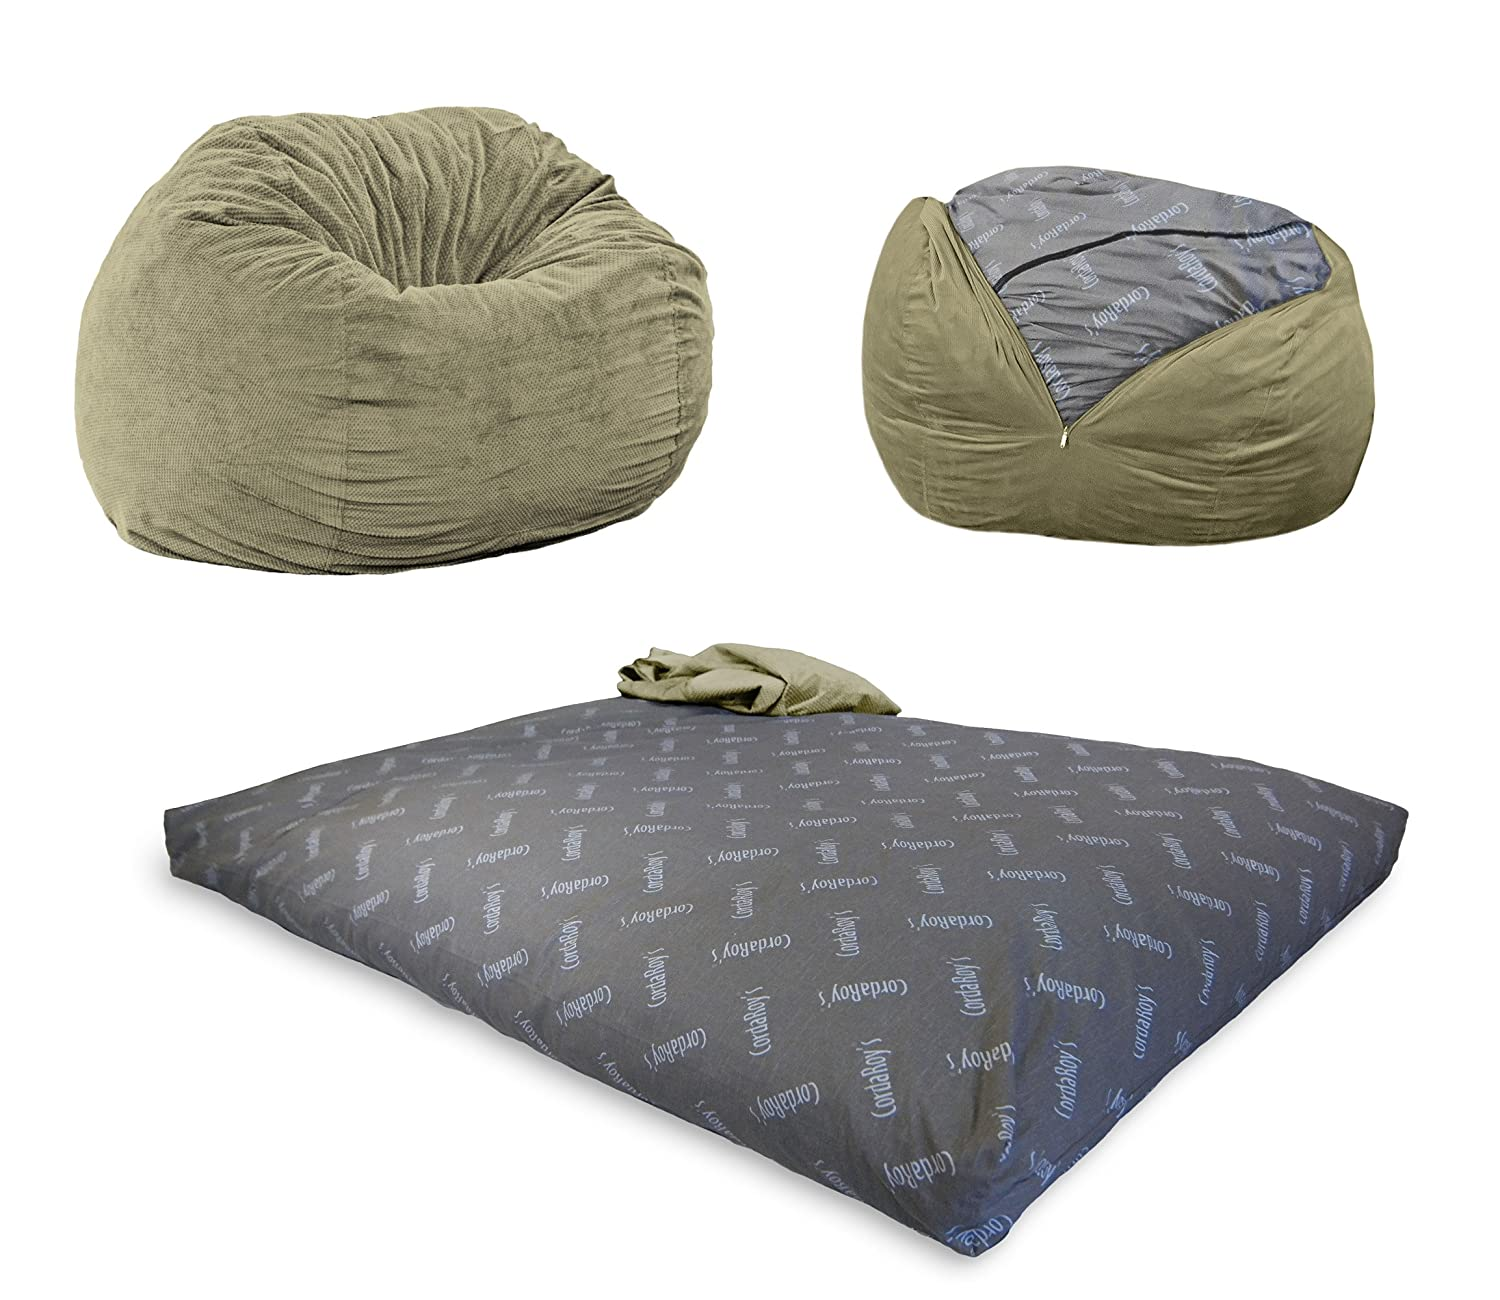 CordaRoy's Chenille Bean Bag Chair, Convertible Chair Folds from Bean Bag to Bed, As Seen on Shark Tank - Moss, Full Size